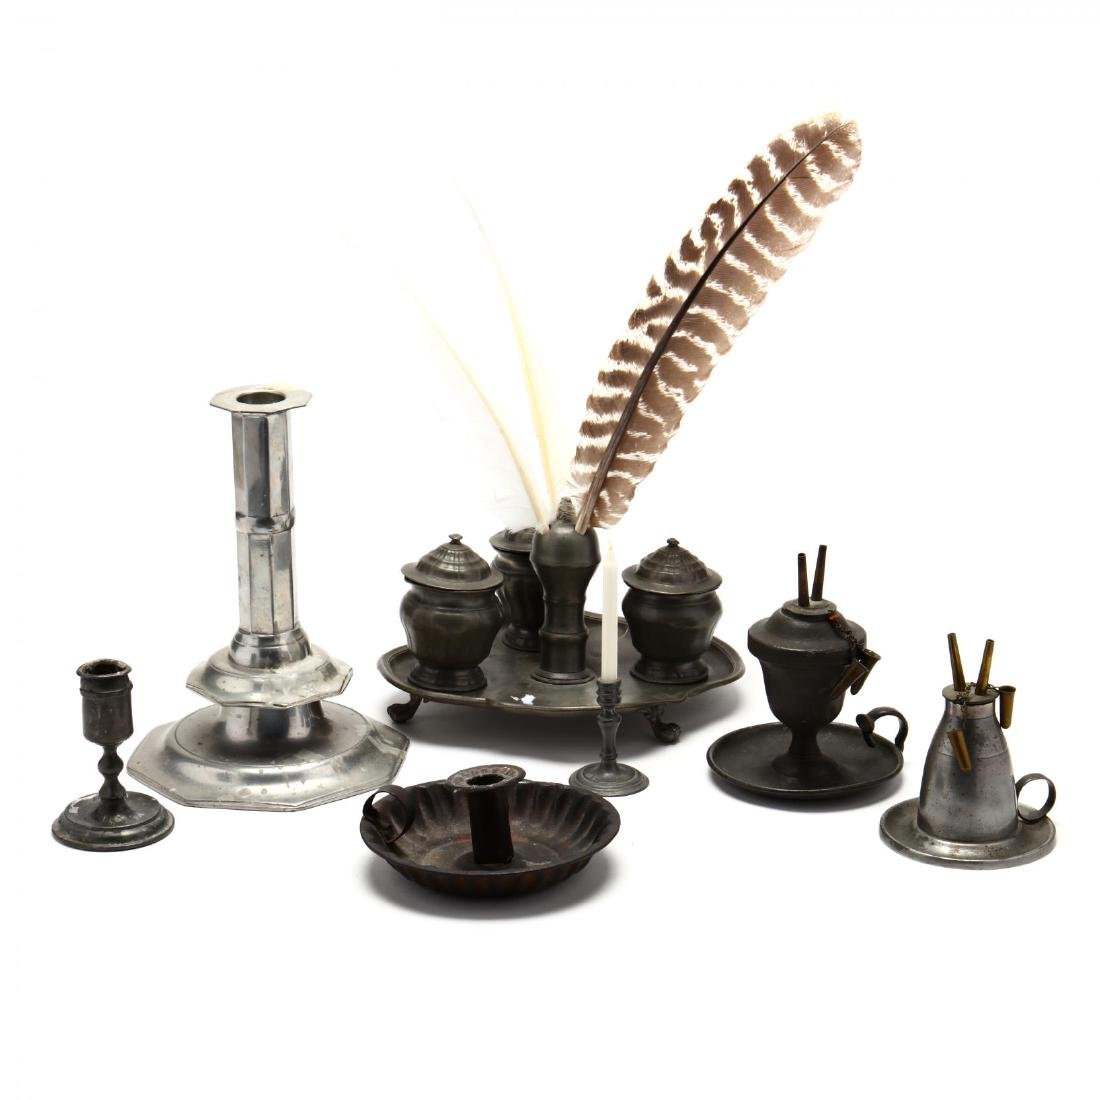 Six Early Pewter Desk Accessories